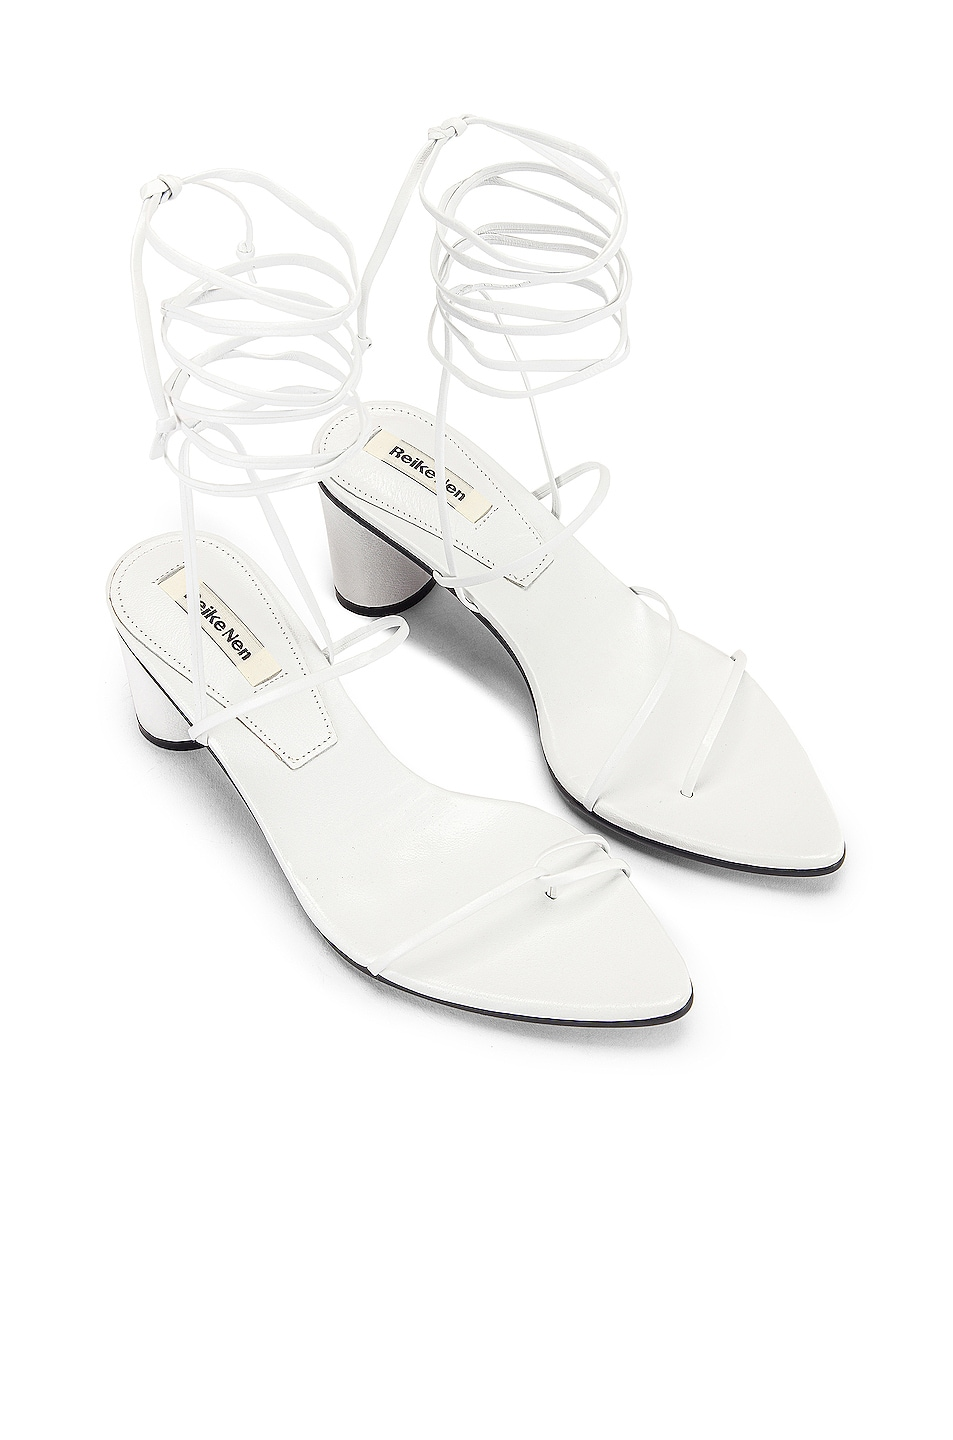 Image 1 of Reike Nen Odd Pair Heels in White